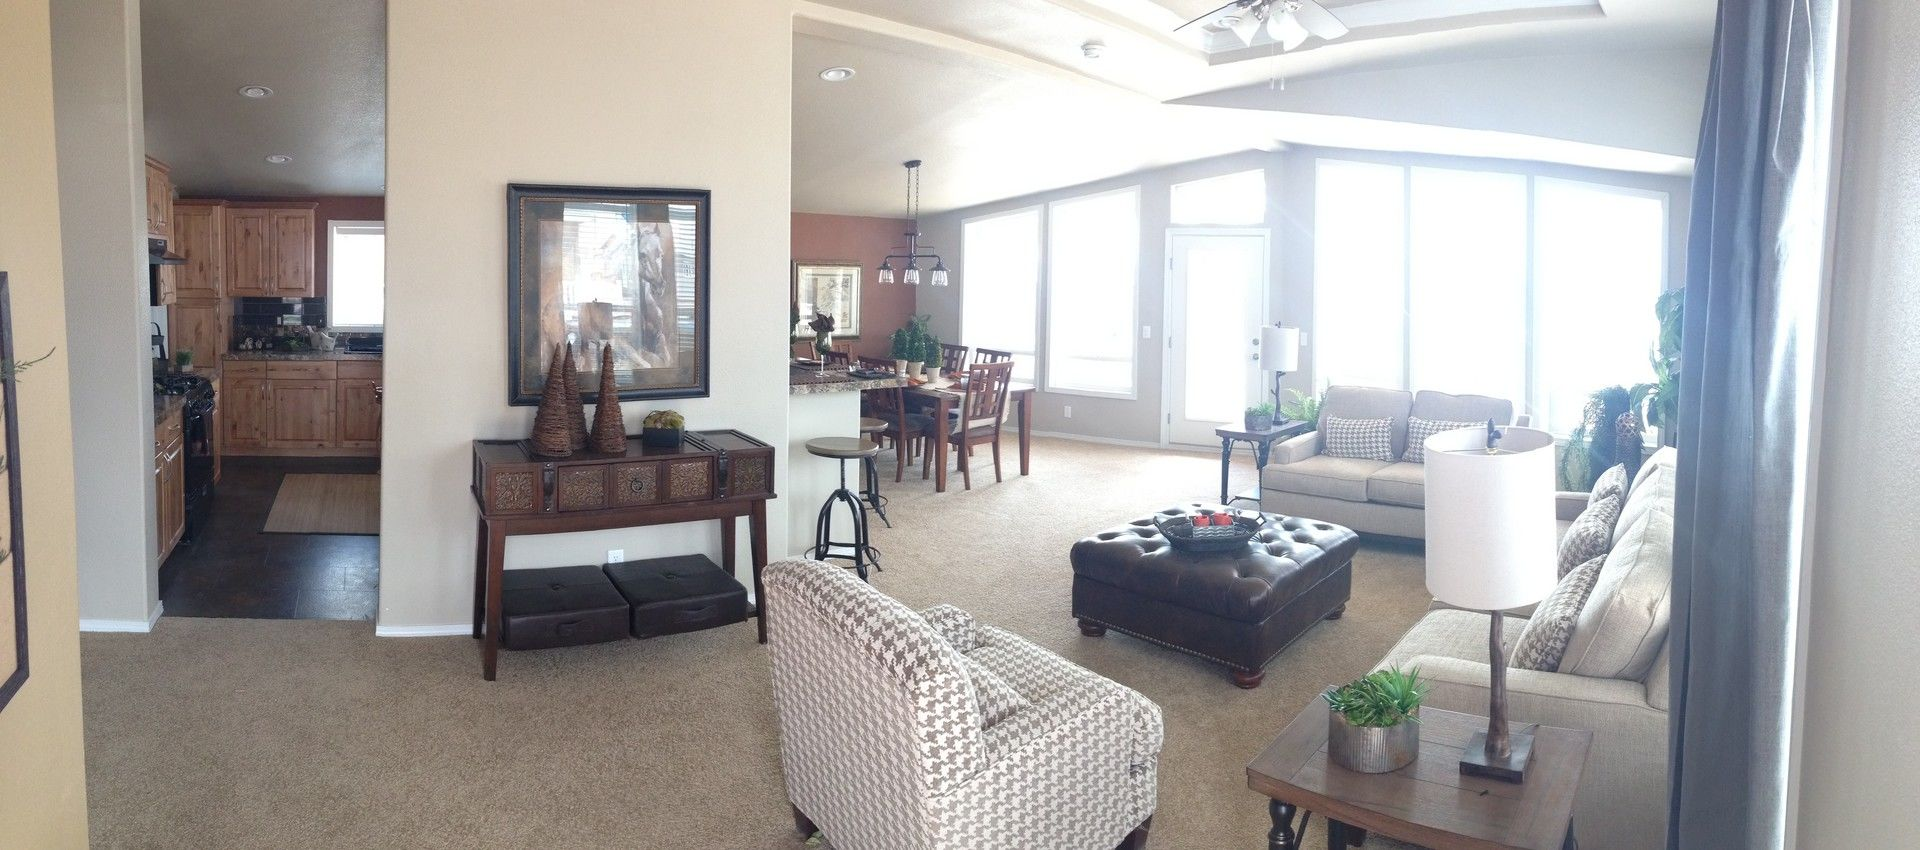 K2766A Prow 3 bed / 2 bath / 1535 sqft affordable home for $89900 ...